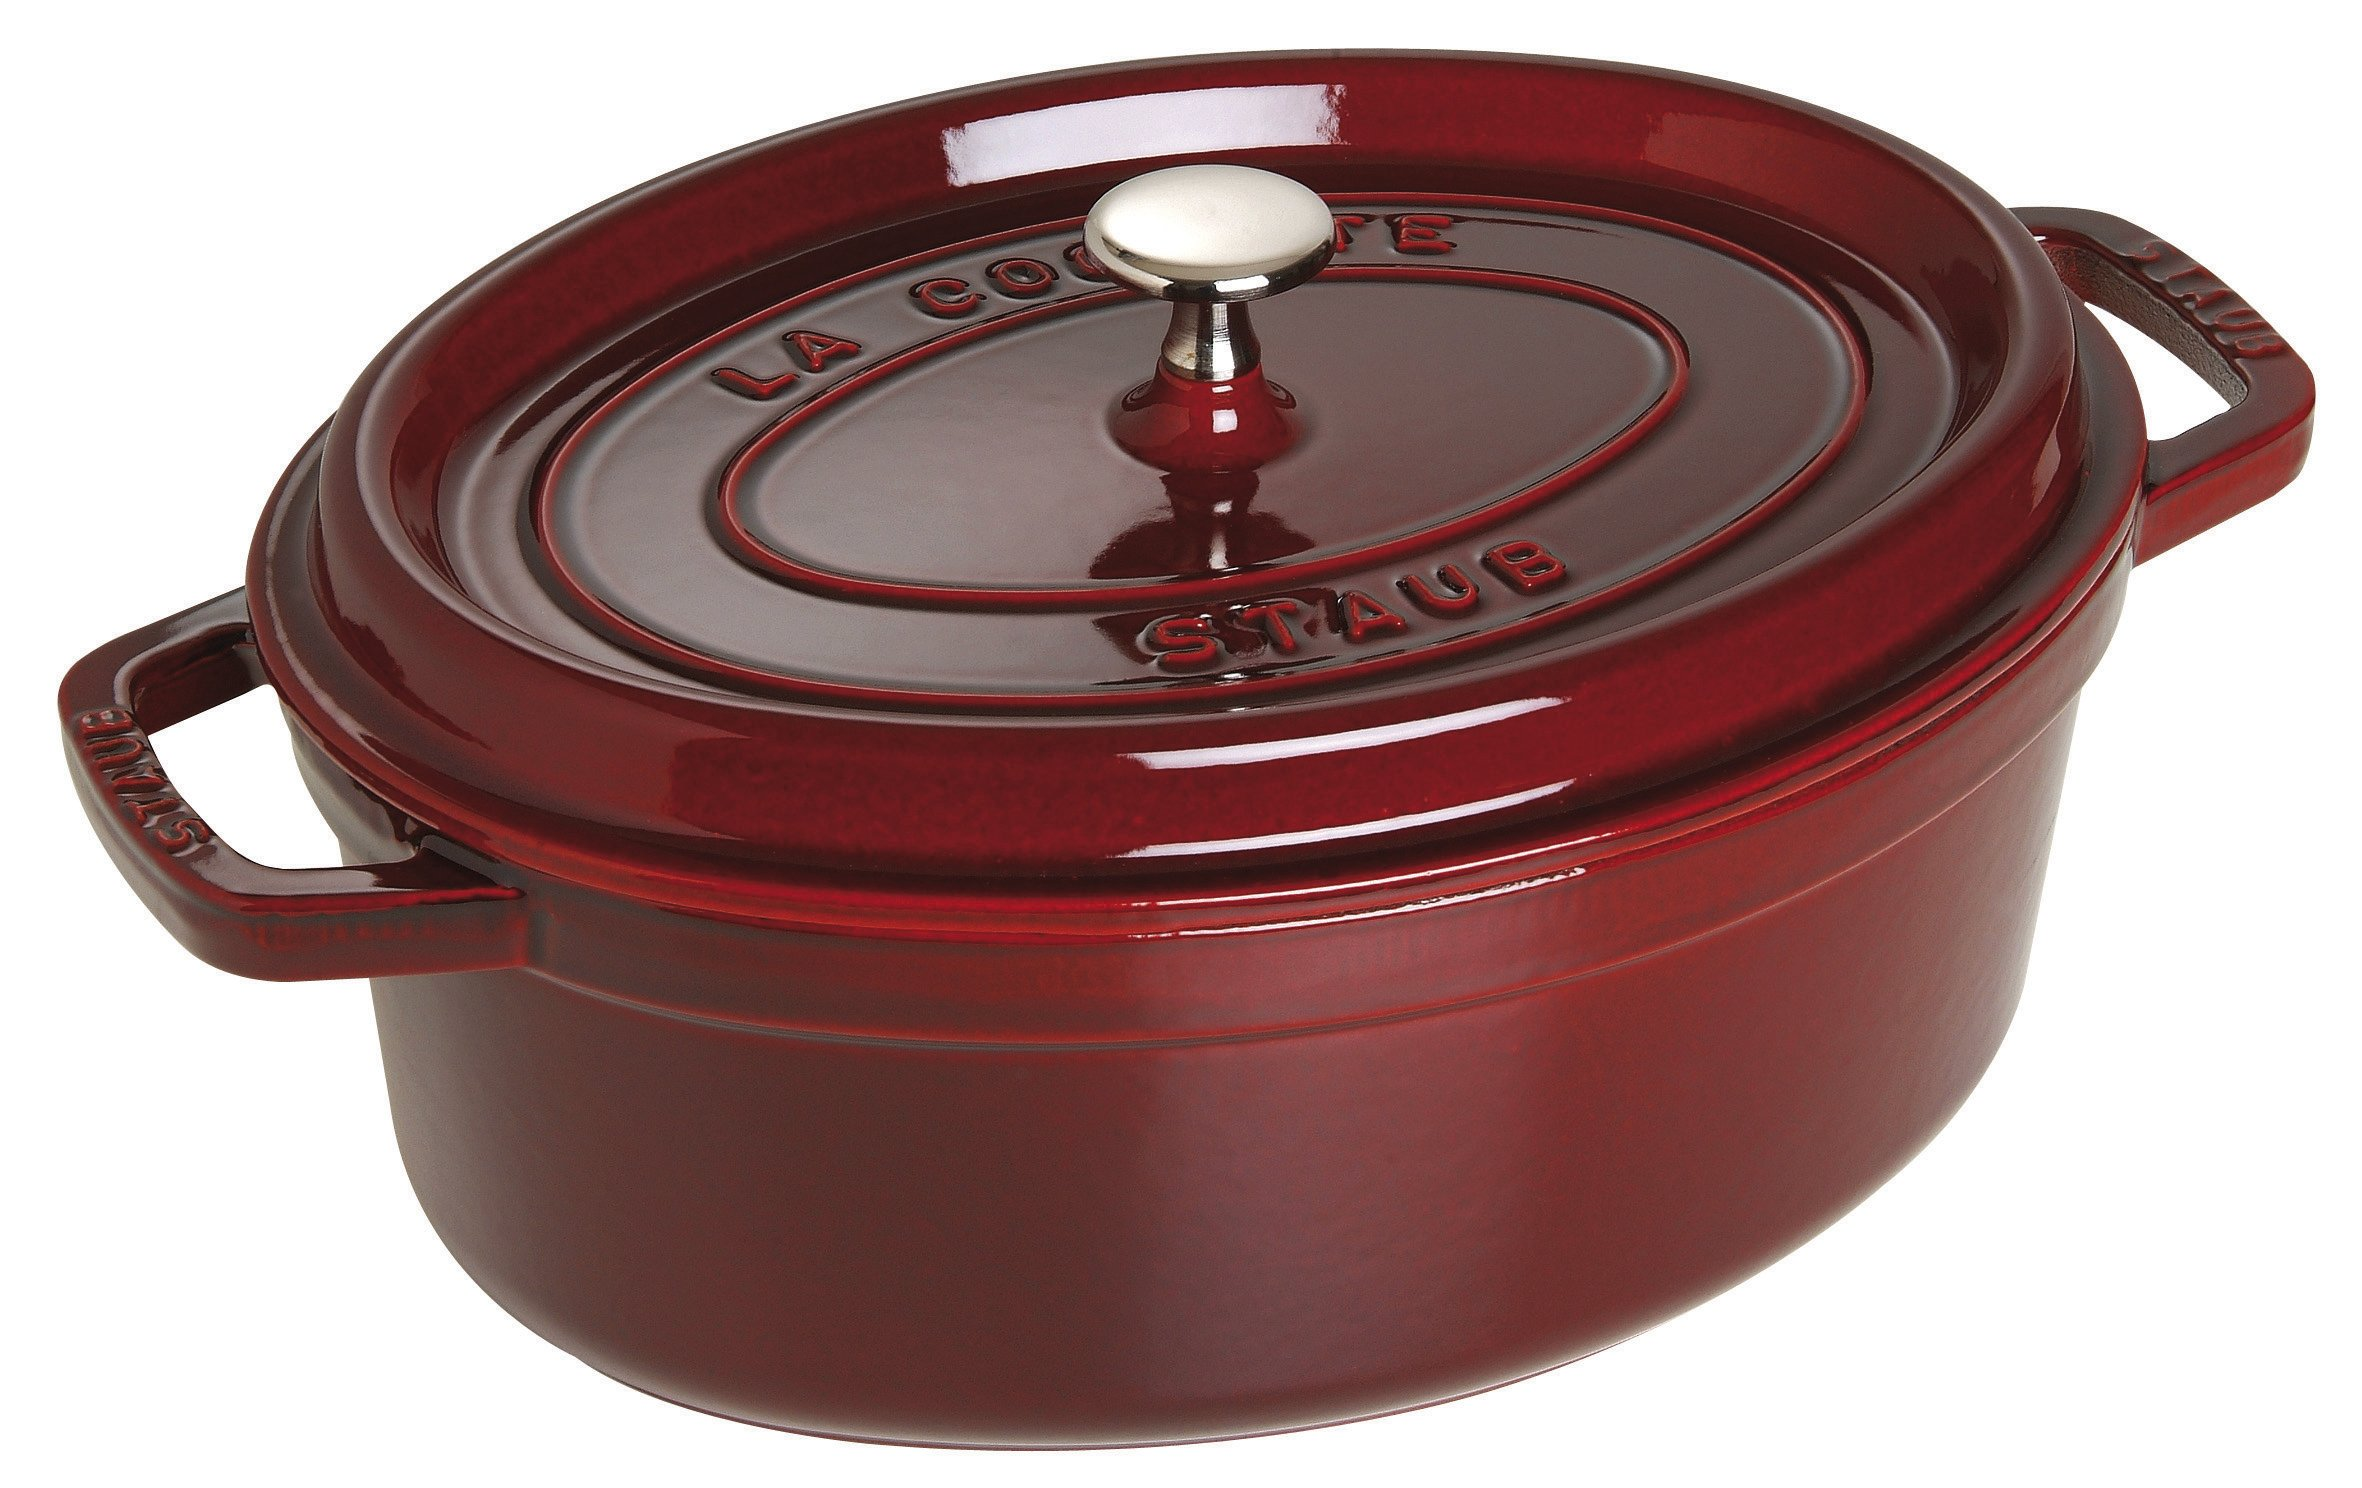 Staub French Oven - Oval - 5.4 L - Grenadine